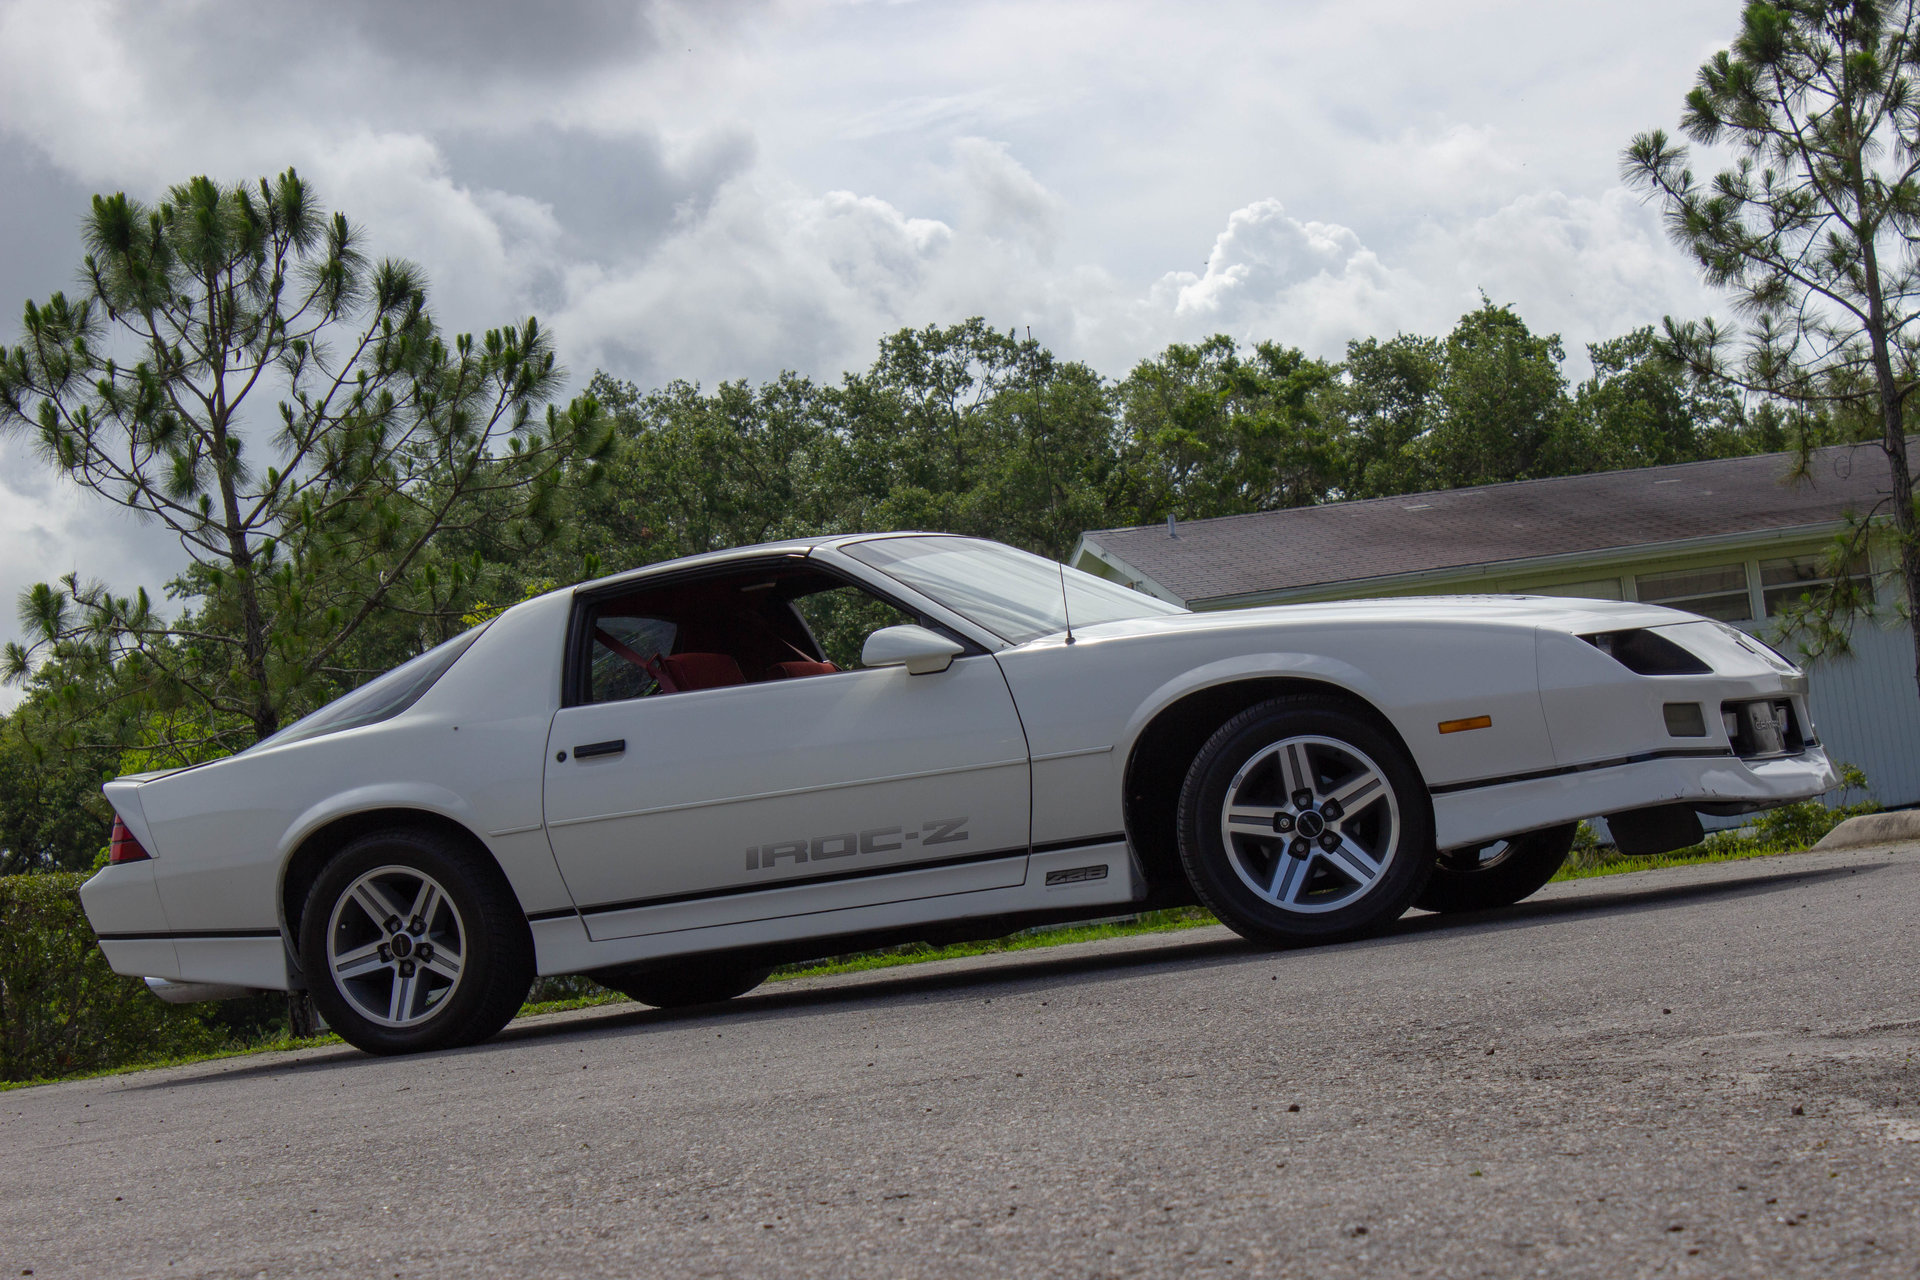 1987 Chevrolet Camaro Classic Cars Amp Used Cars For Sale